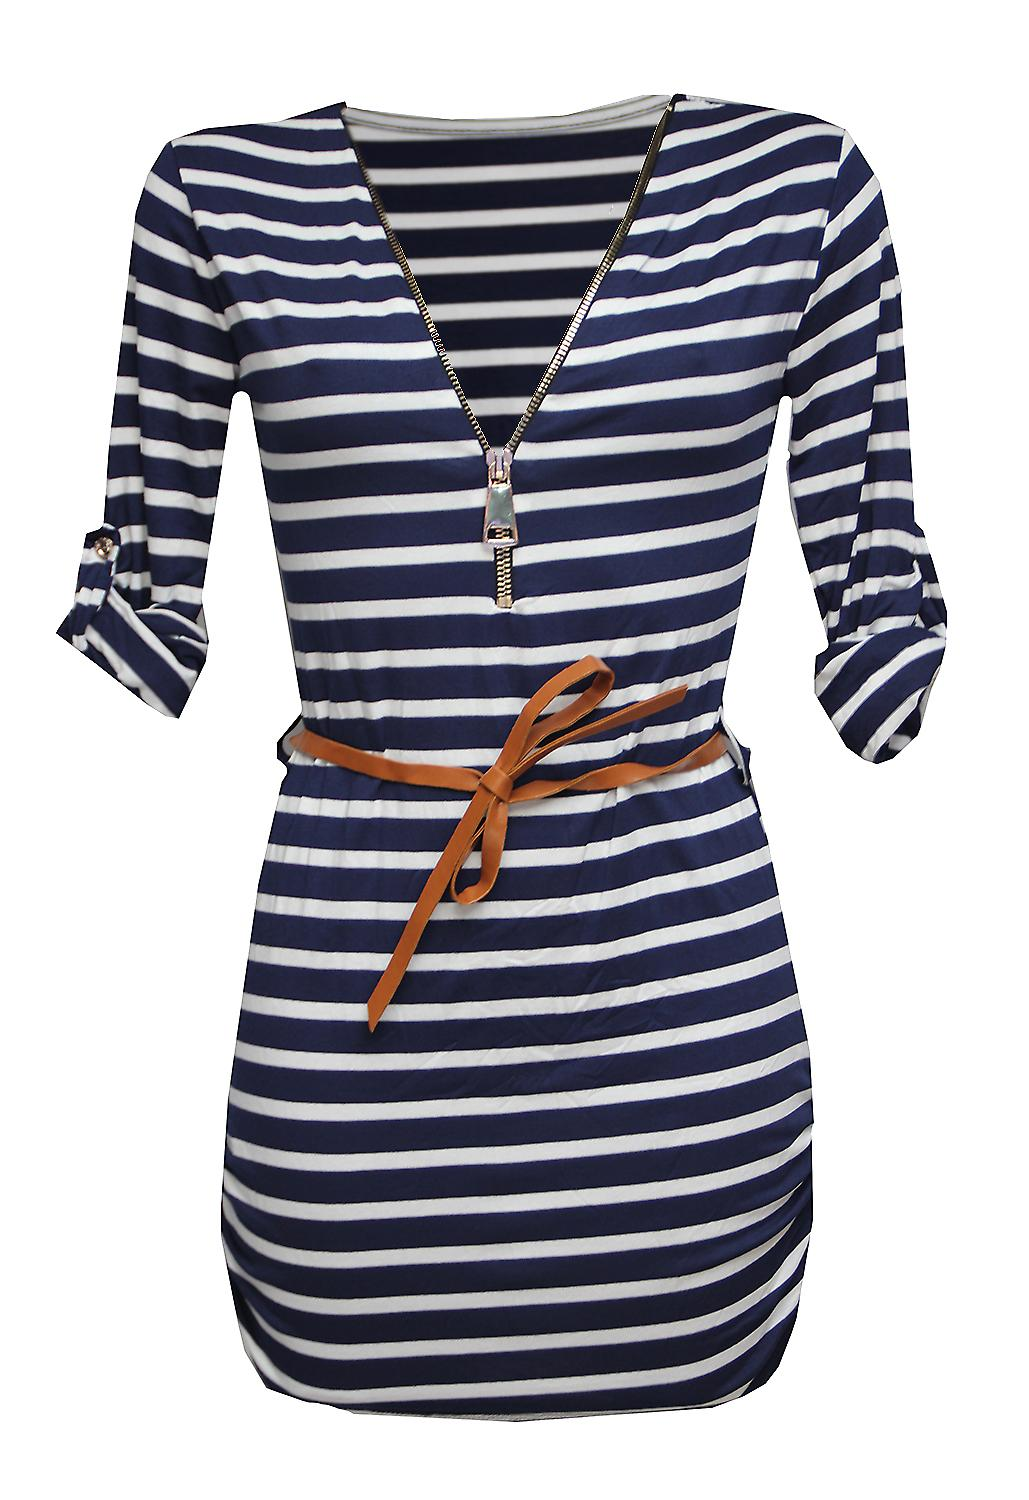 Waooh - short summer dress striped sailor way